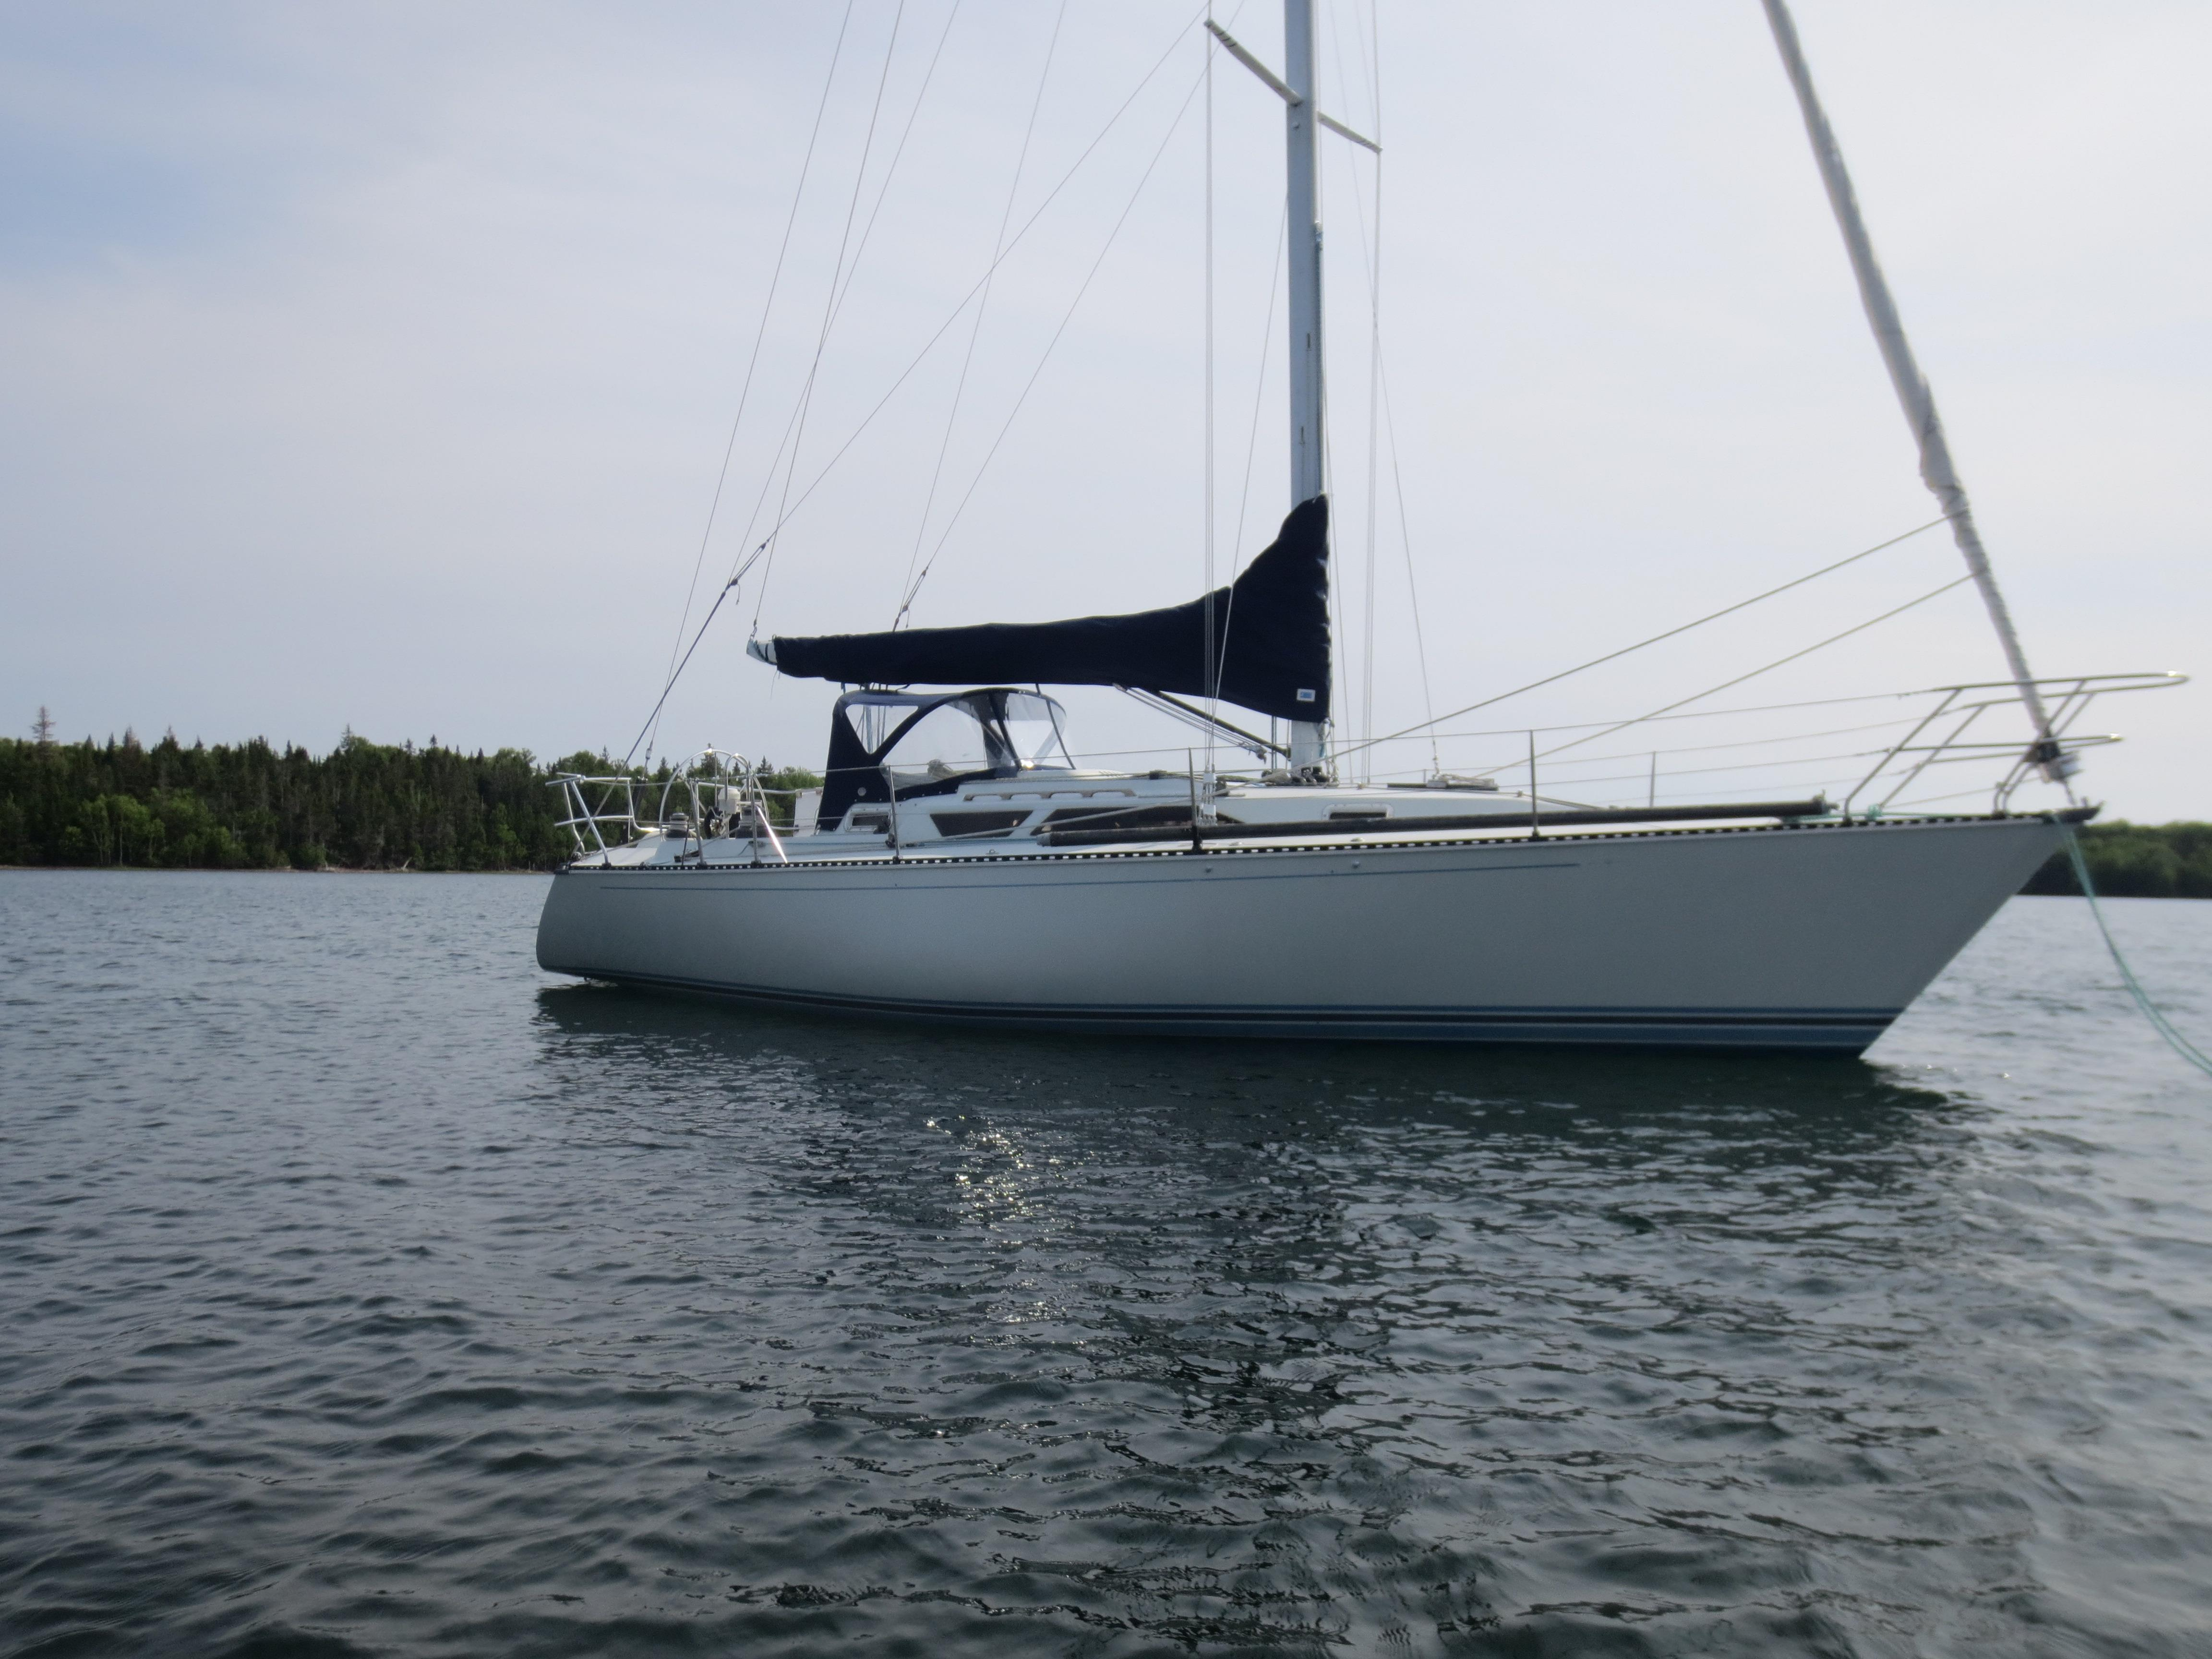 1987 CampC 38 MKIII Sail Boat For Sale Wwwyachtworldcom